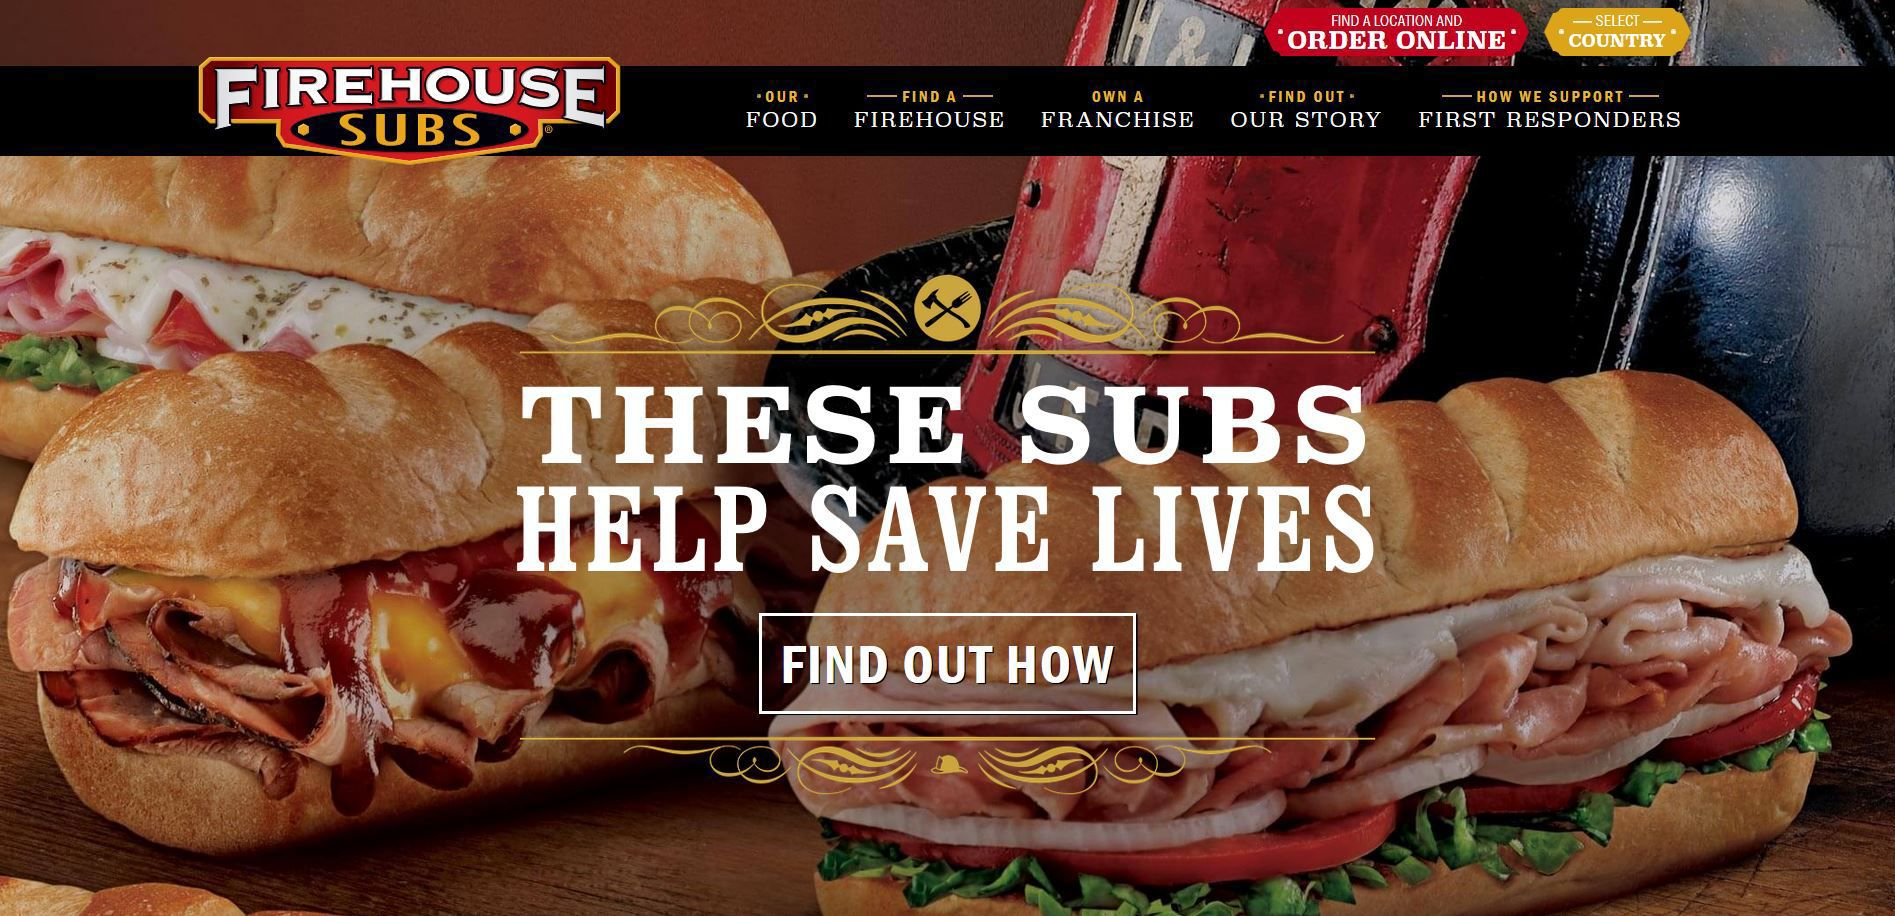 Exceptional Firehouse Subs